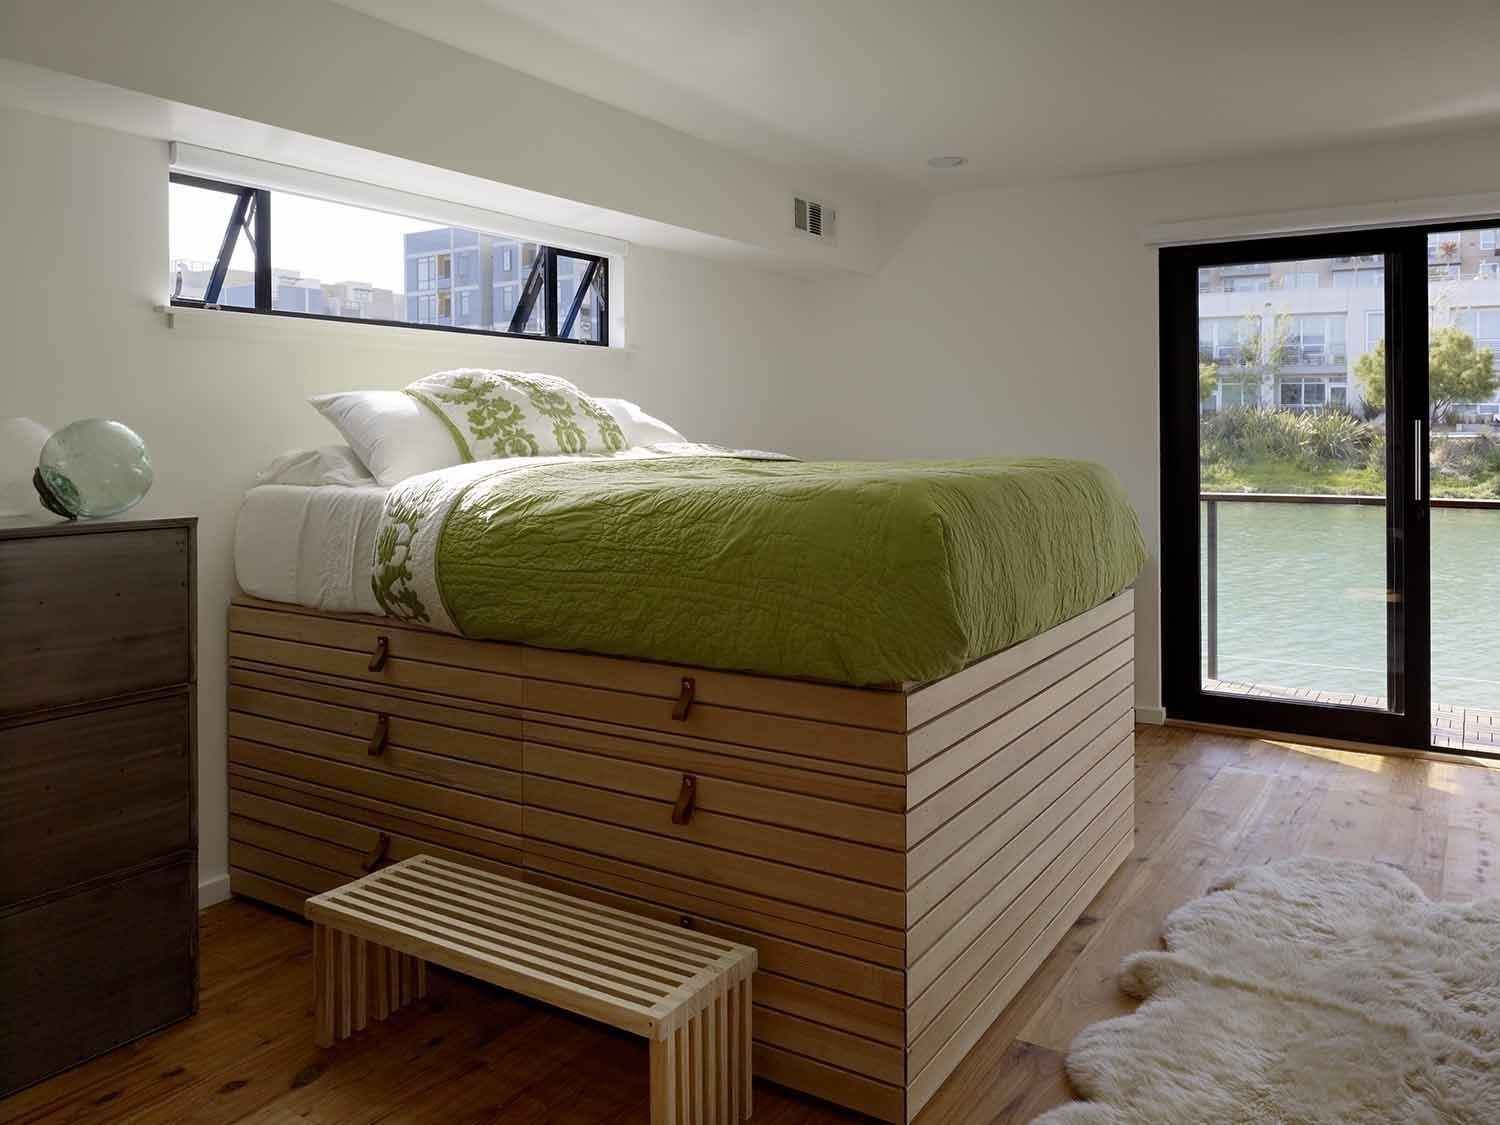 Bedroom and Bed In the second floor master bedroom, a custom captain's bed designed by the homeowner, features drawers and storage underneath. Its towering height allows for views out the nearby window.  Bedrooms by Dwell from Like a Loft on Water